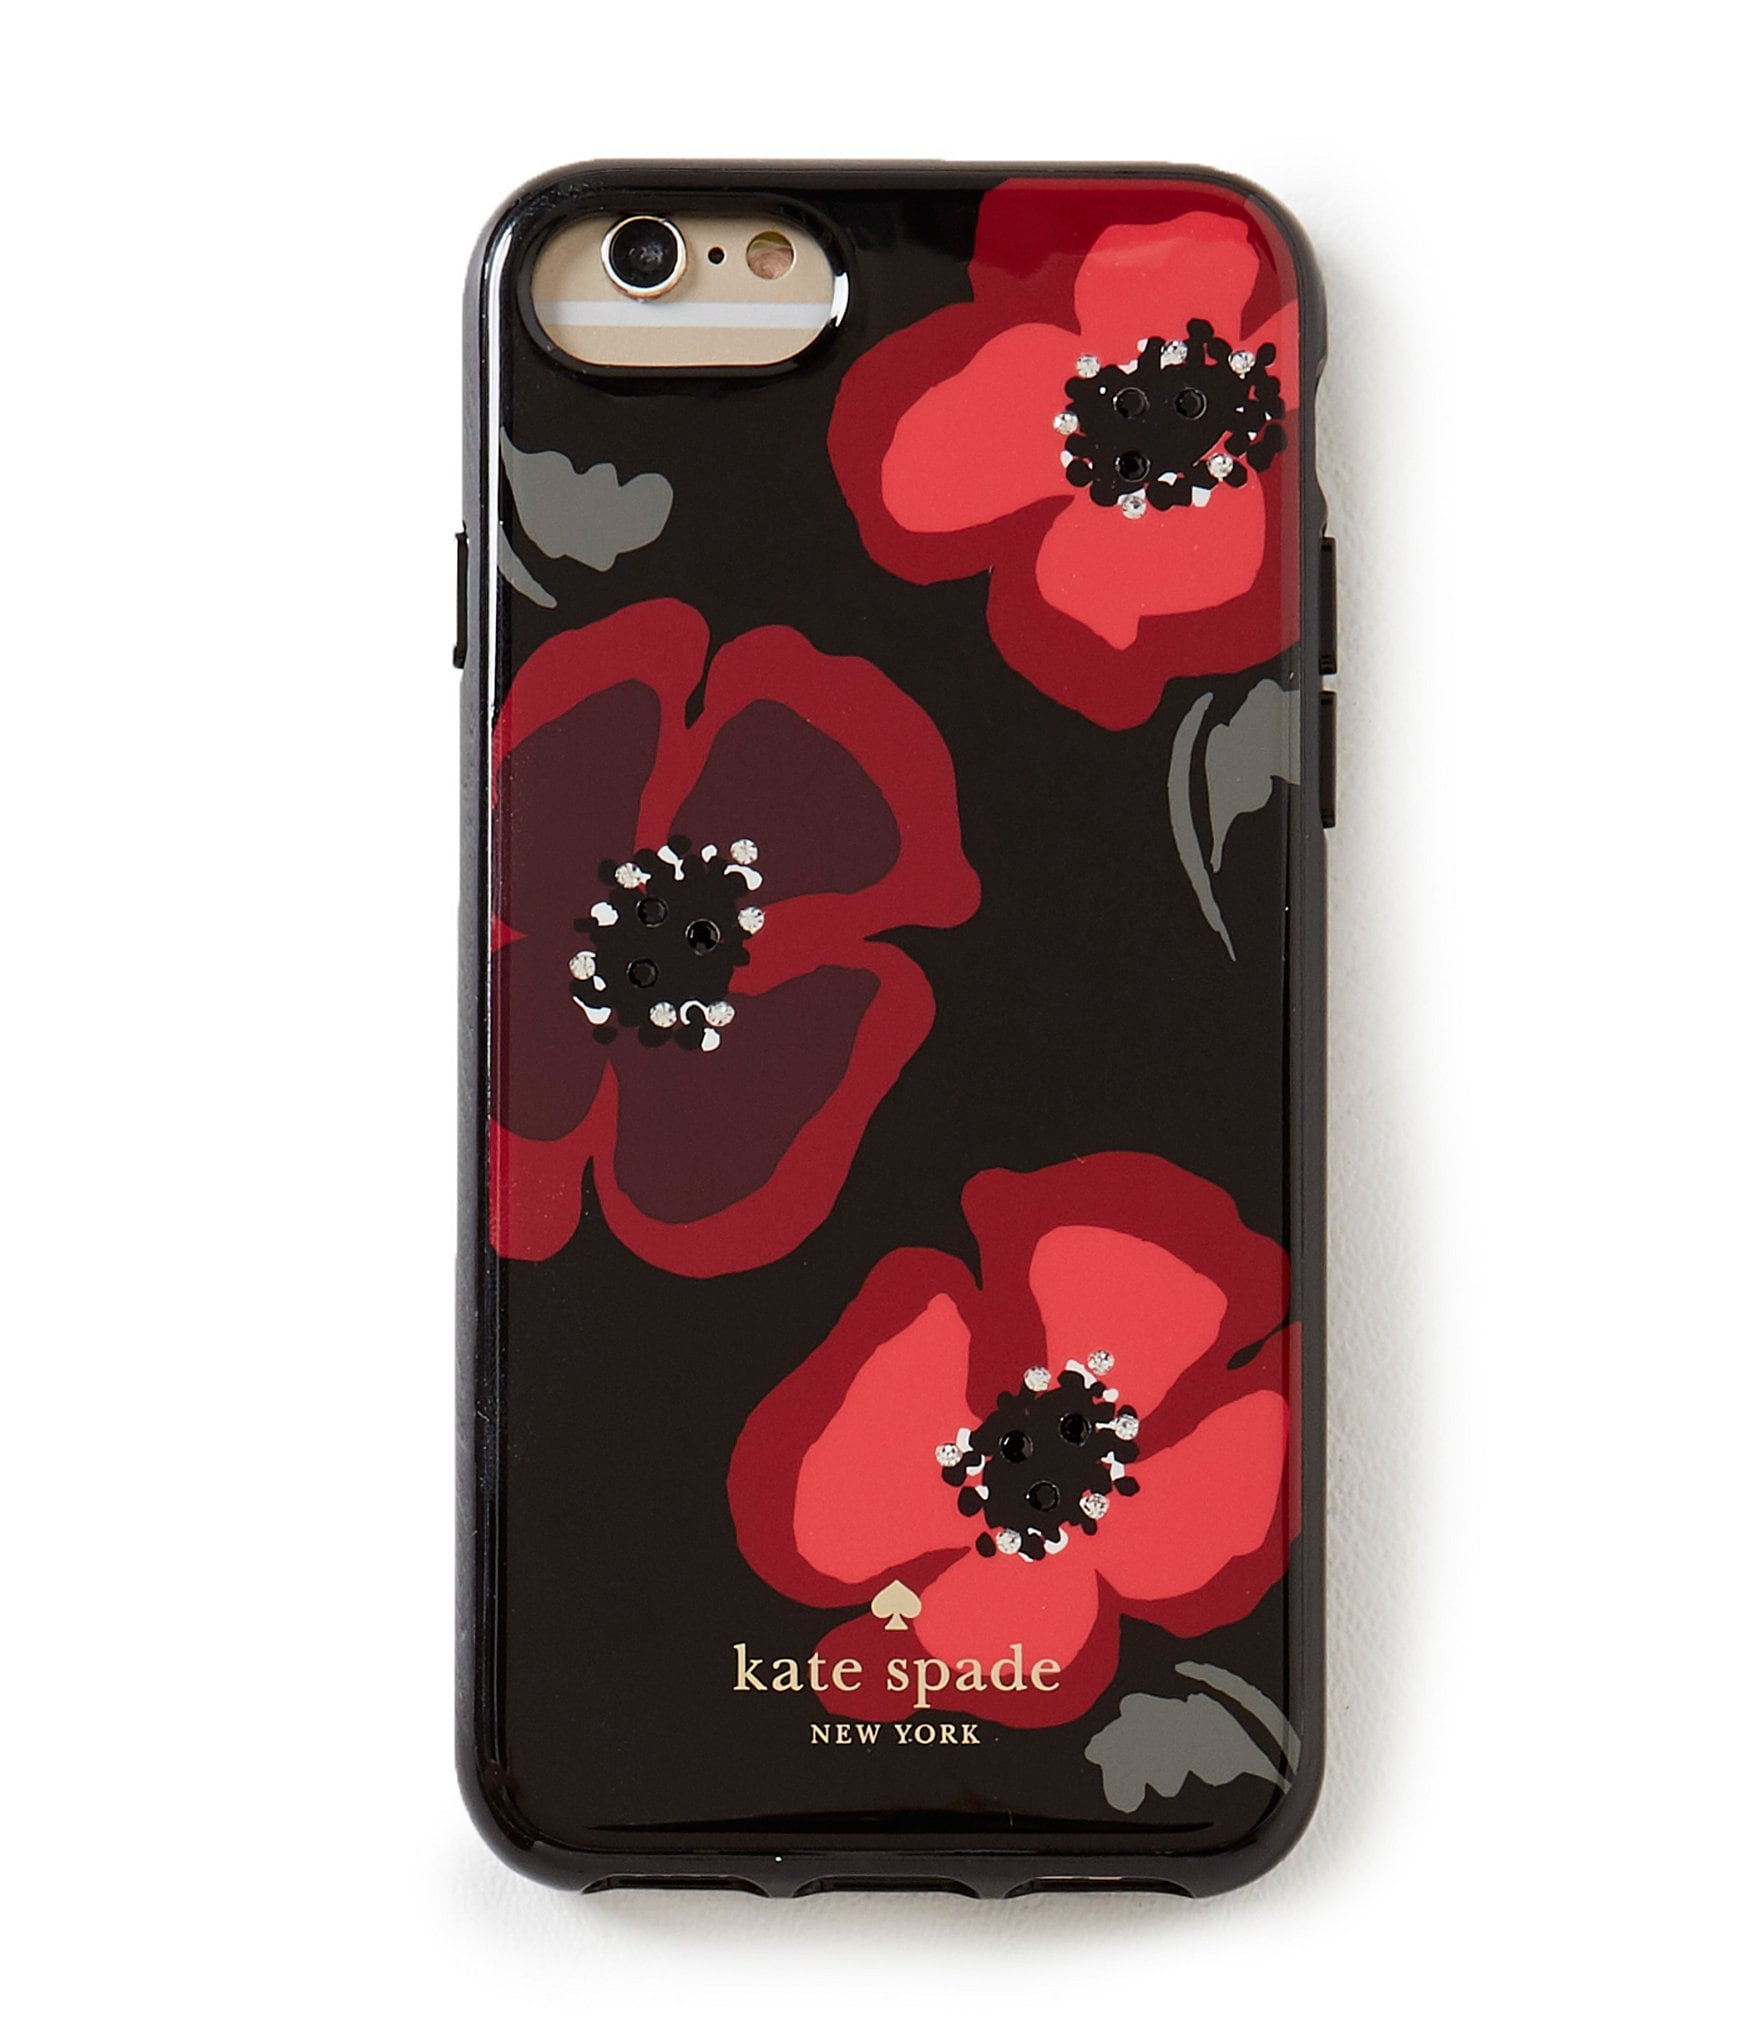 Iphone Case S Kate Spade